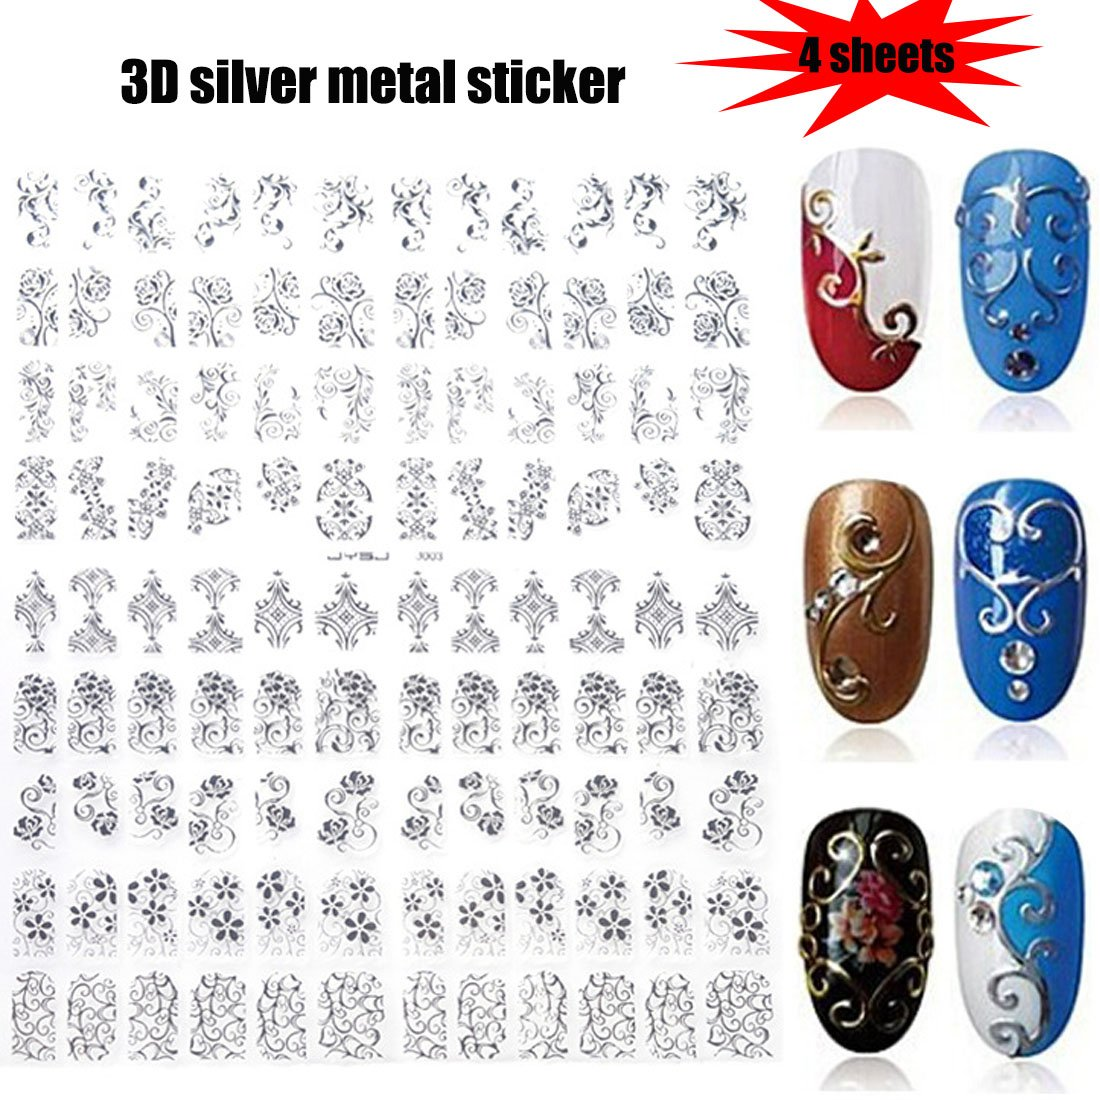 Lookathot 432PCS/4 Sheets 3D Silver Metallic Nail Art Stickers Decals Flowers Mixed Designs Nail DIY Decoration Tools by Lookathot